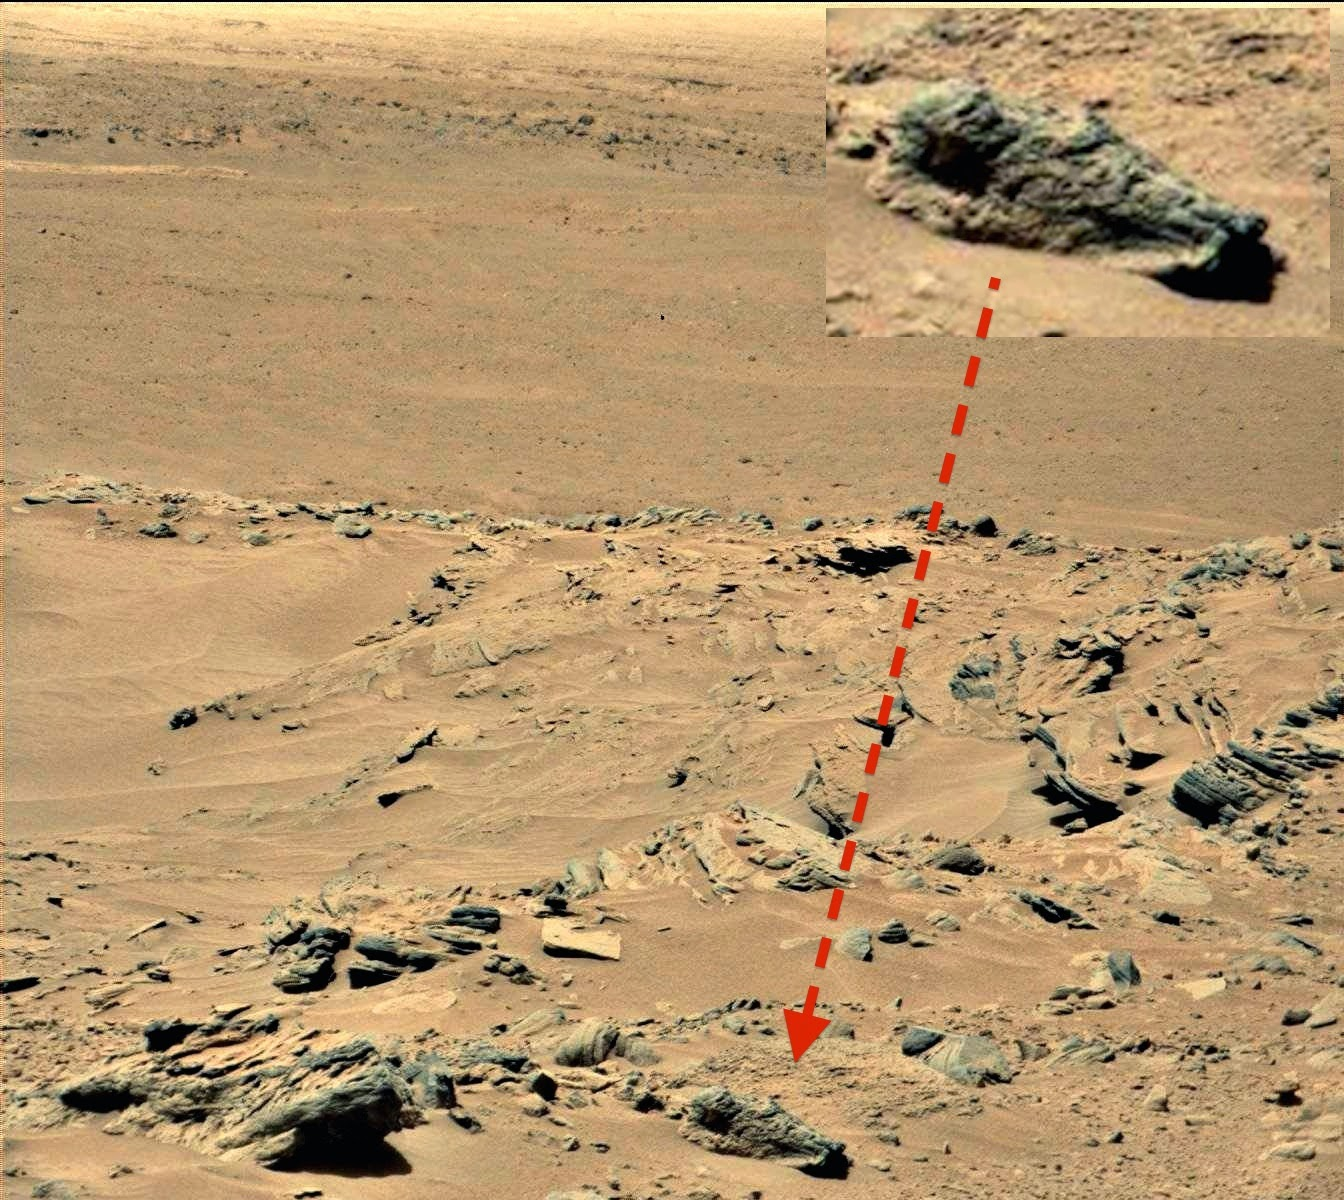 mars rover crash - photo #45